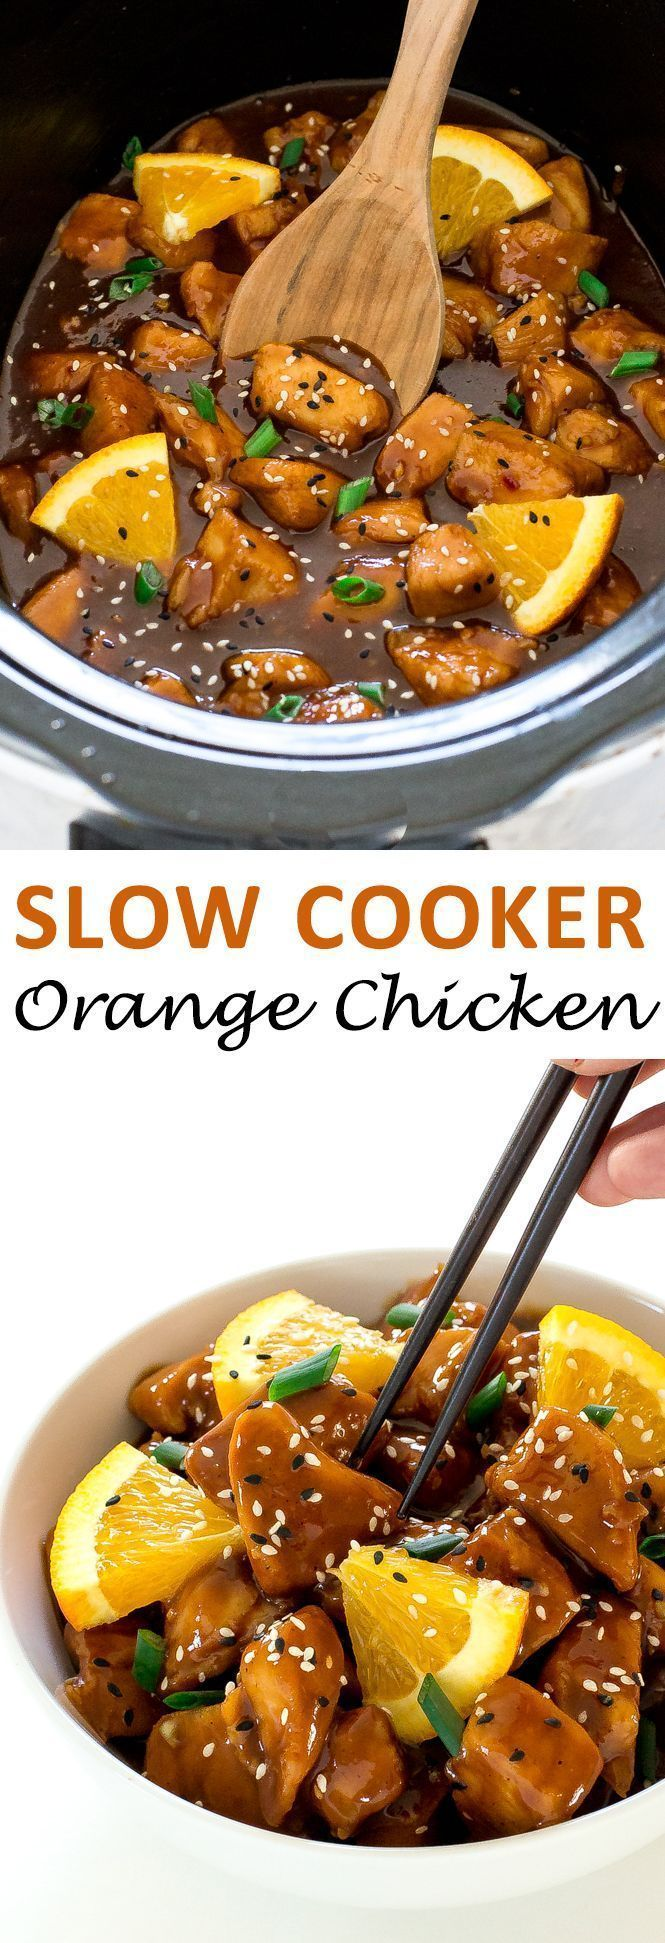 Super Easy Slow Cooker Orange Chicken. So much better and healthier than takeout! | chefsavvy.com #recipe #slow #cooker #orange #chicken #crockpot